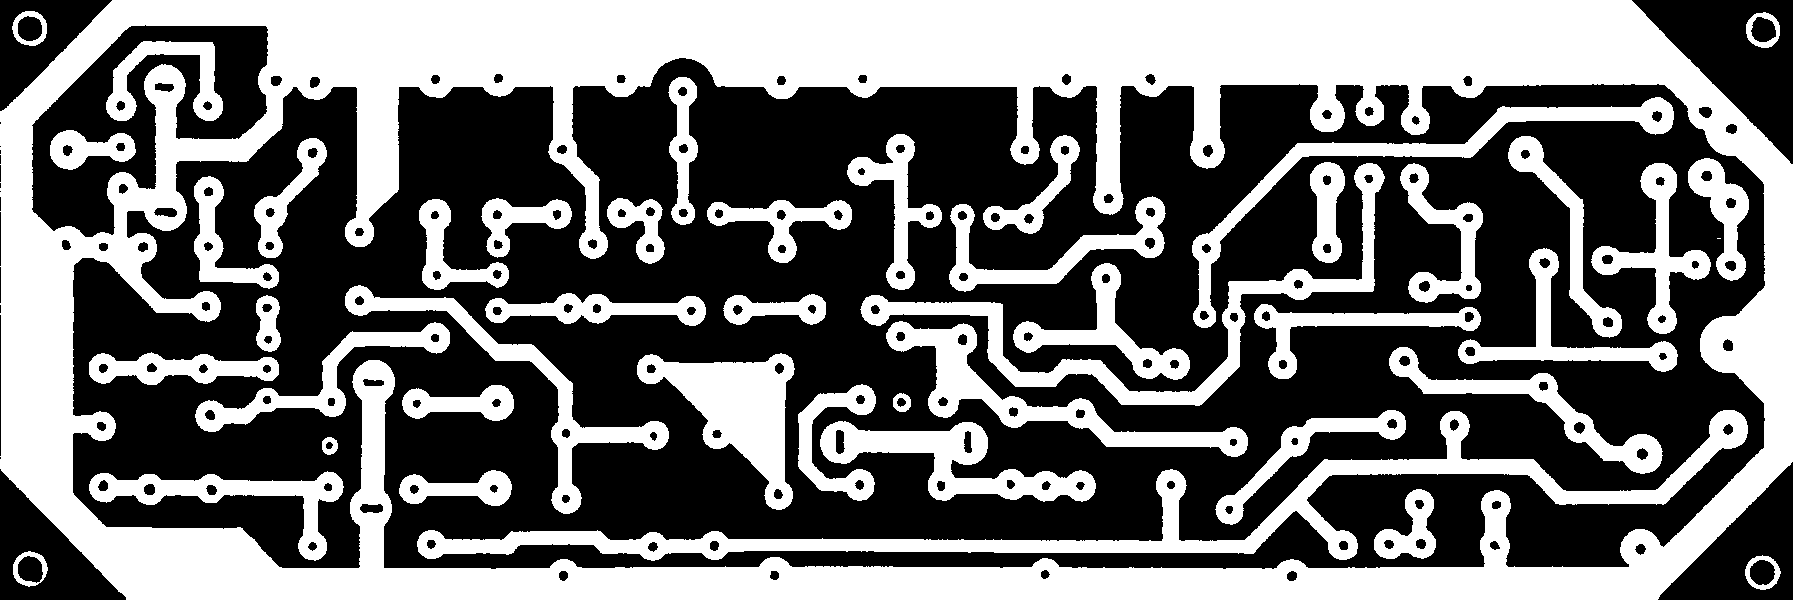 Practical Radio Circuits Pdf The Coil L1 On Fm Is Formed Pcb It39s Not Actually A Semiconductor Leads Should Be Just Long Enough To Permit Use Of Miniature Crocodile Clip